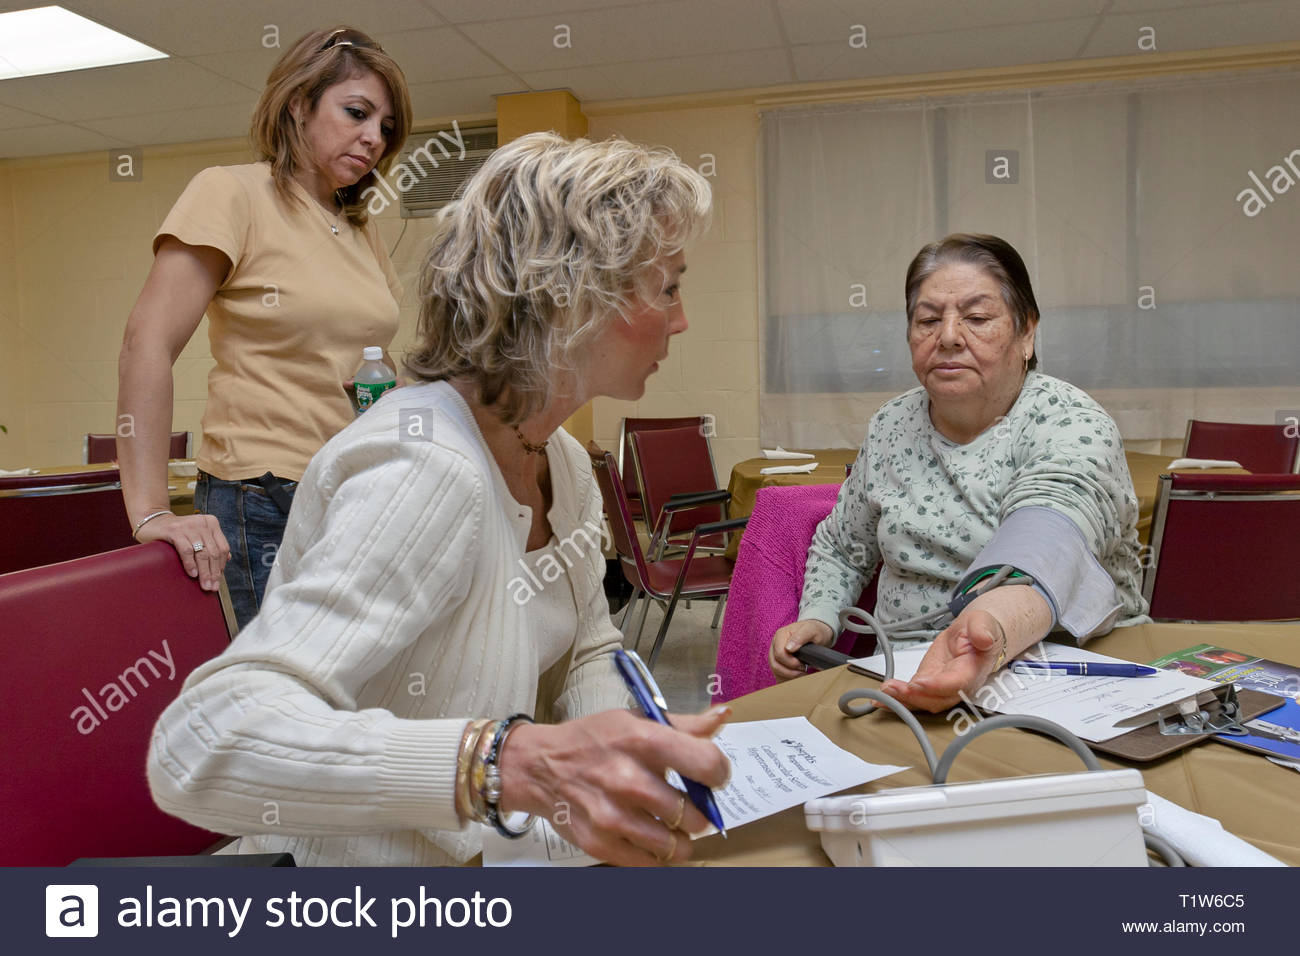 A female nurse takes the blood pressure of a senior woman in a community outreach program. - Stock Image